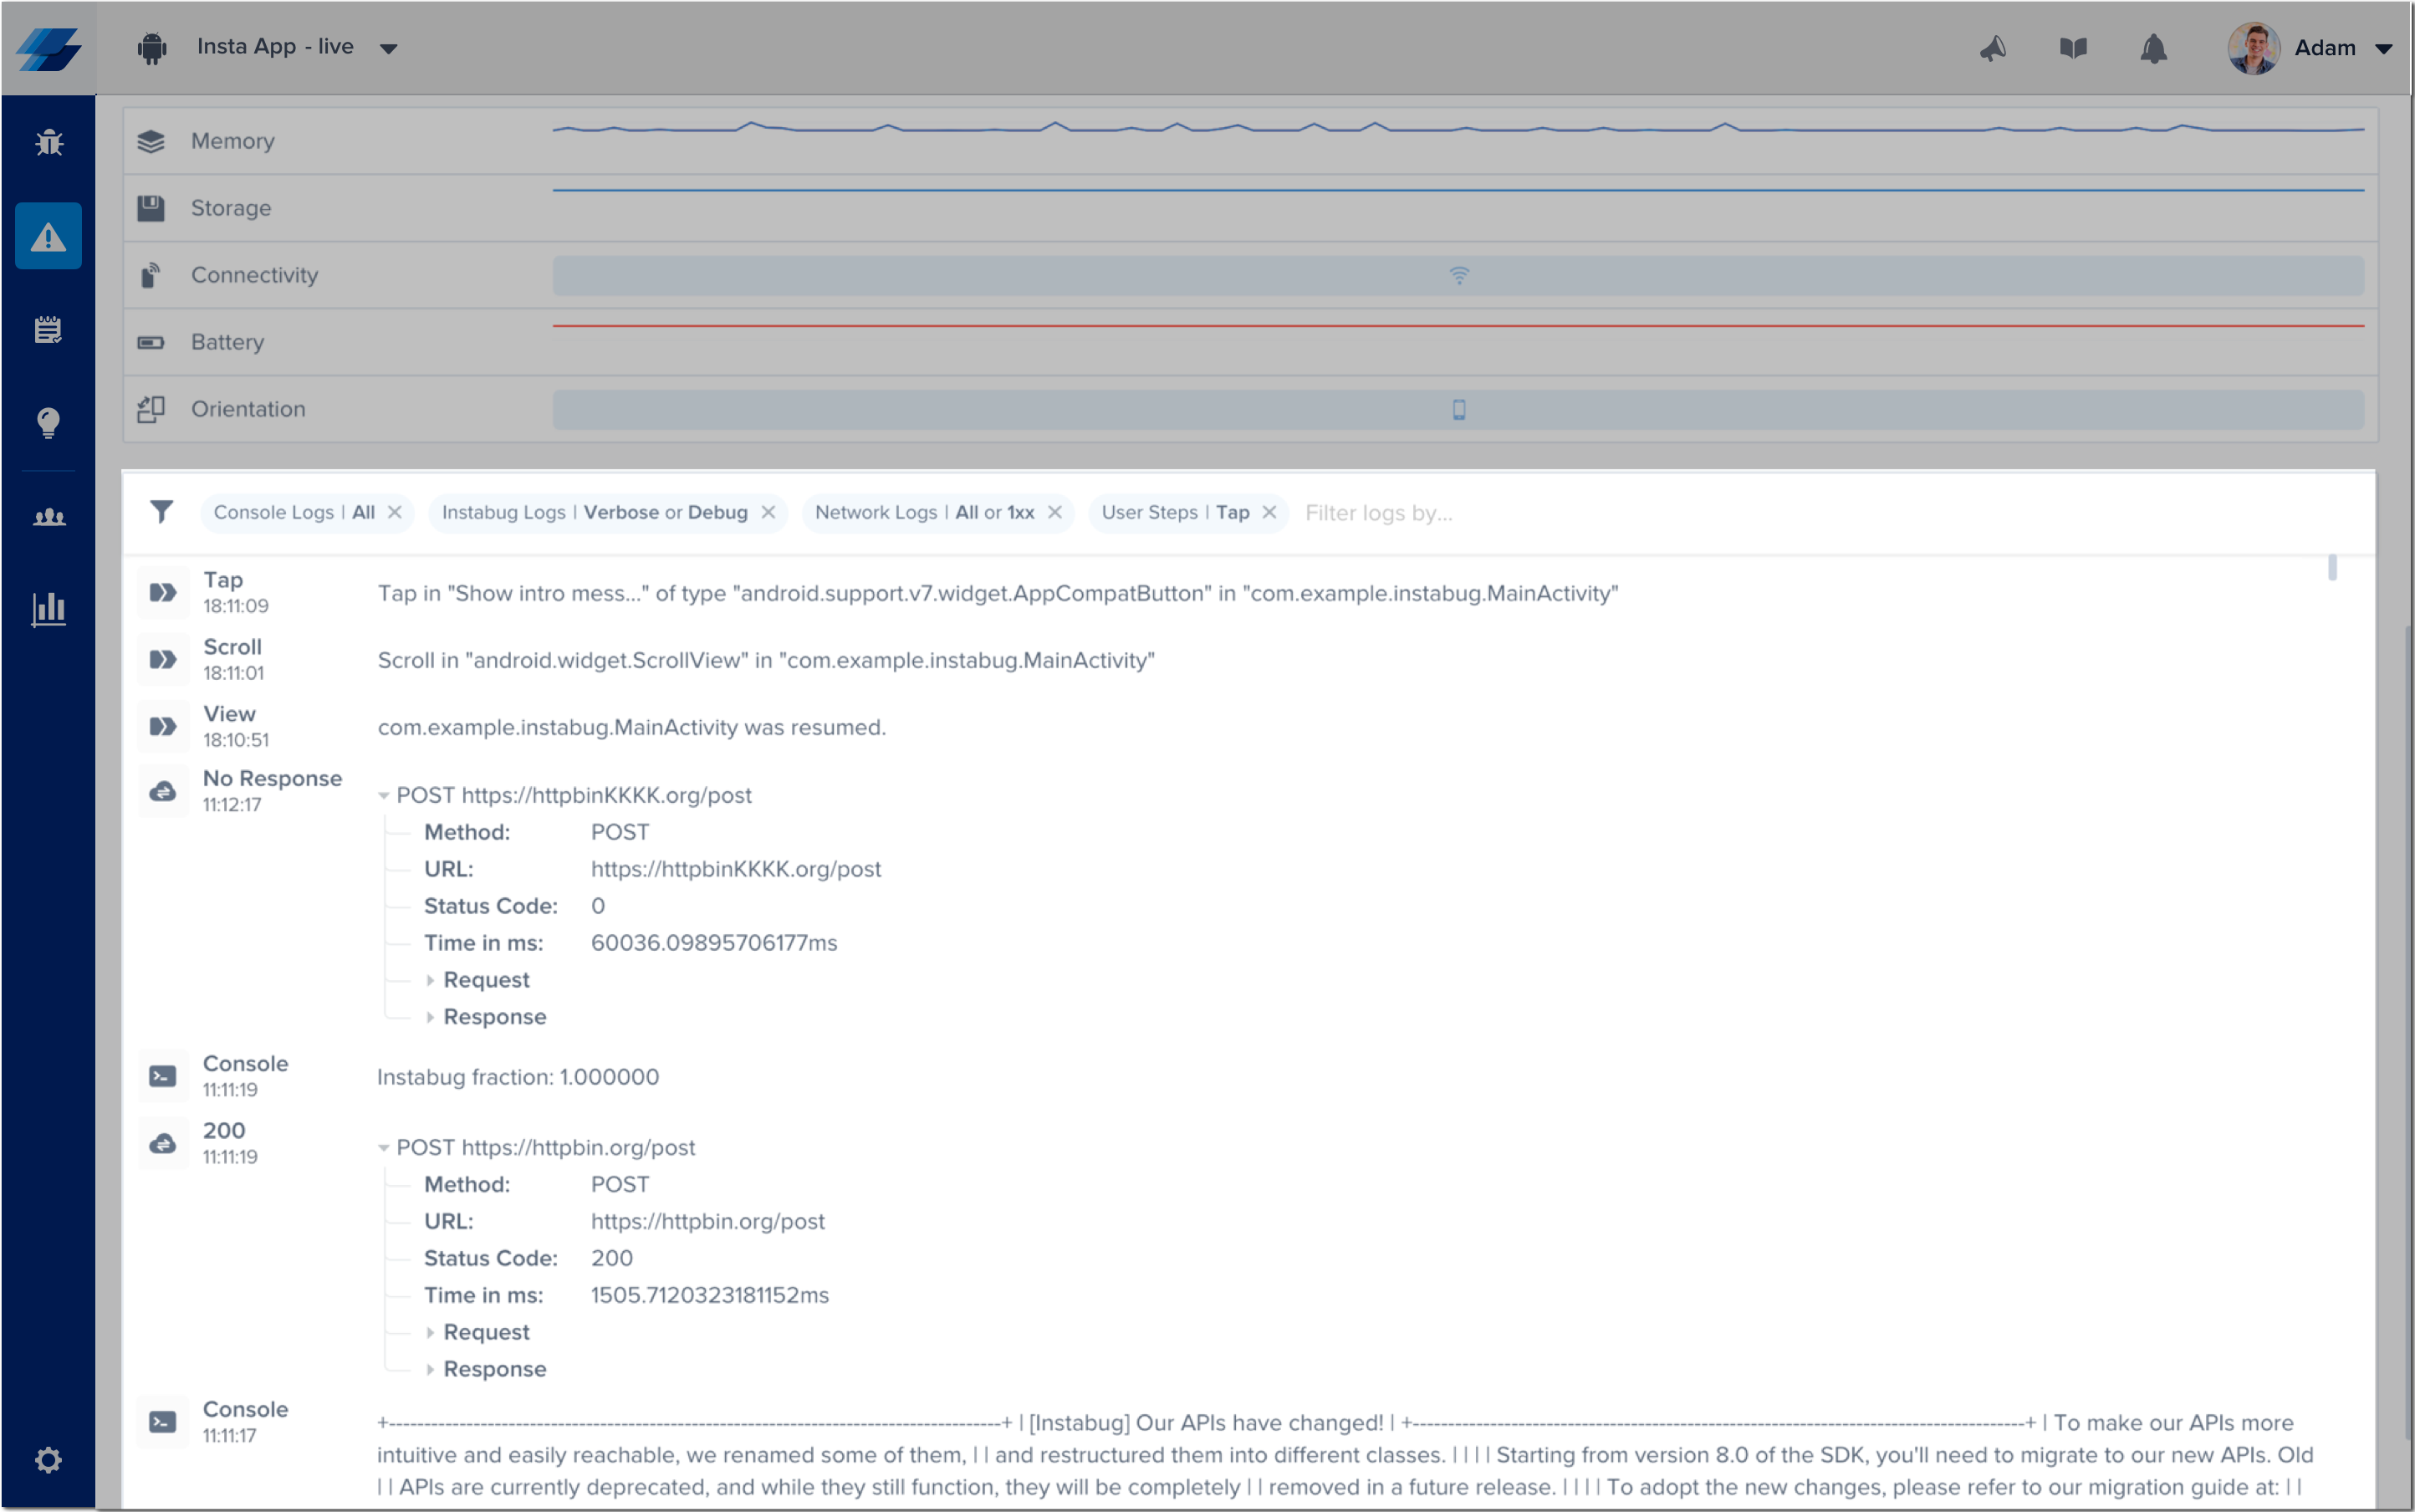 An example of the expanded logs view in the Instabug dashboard.